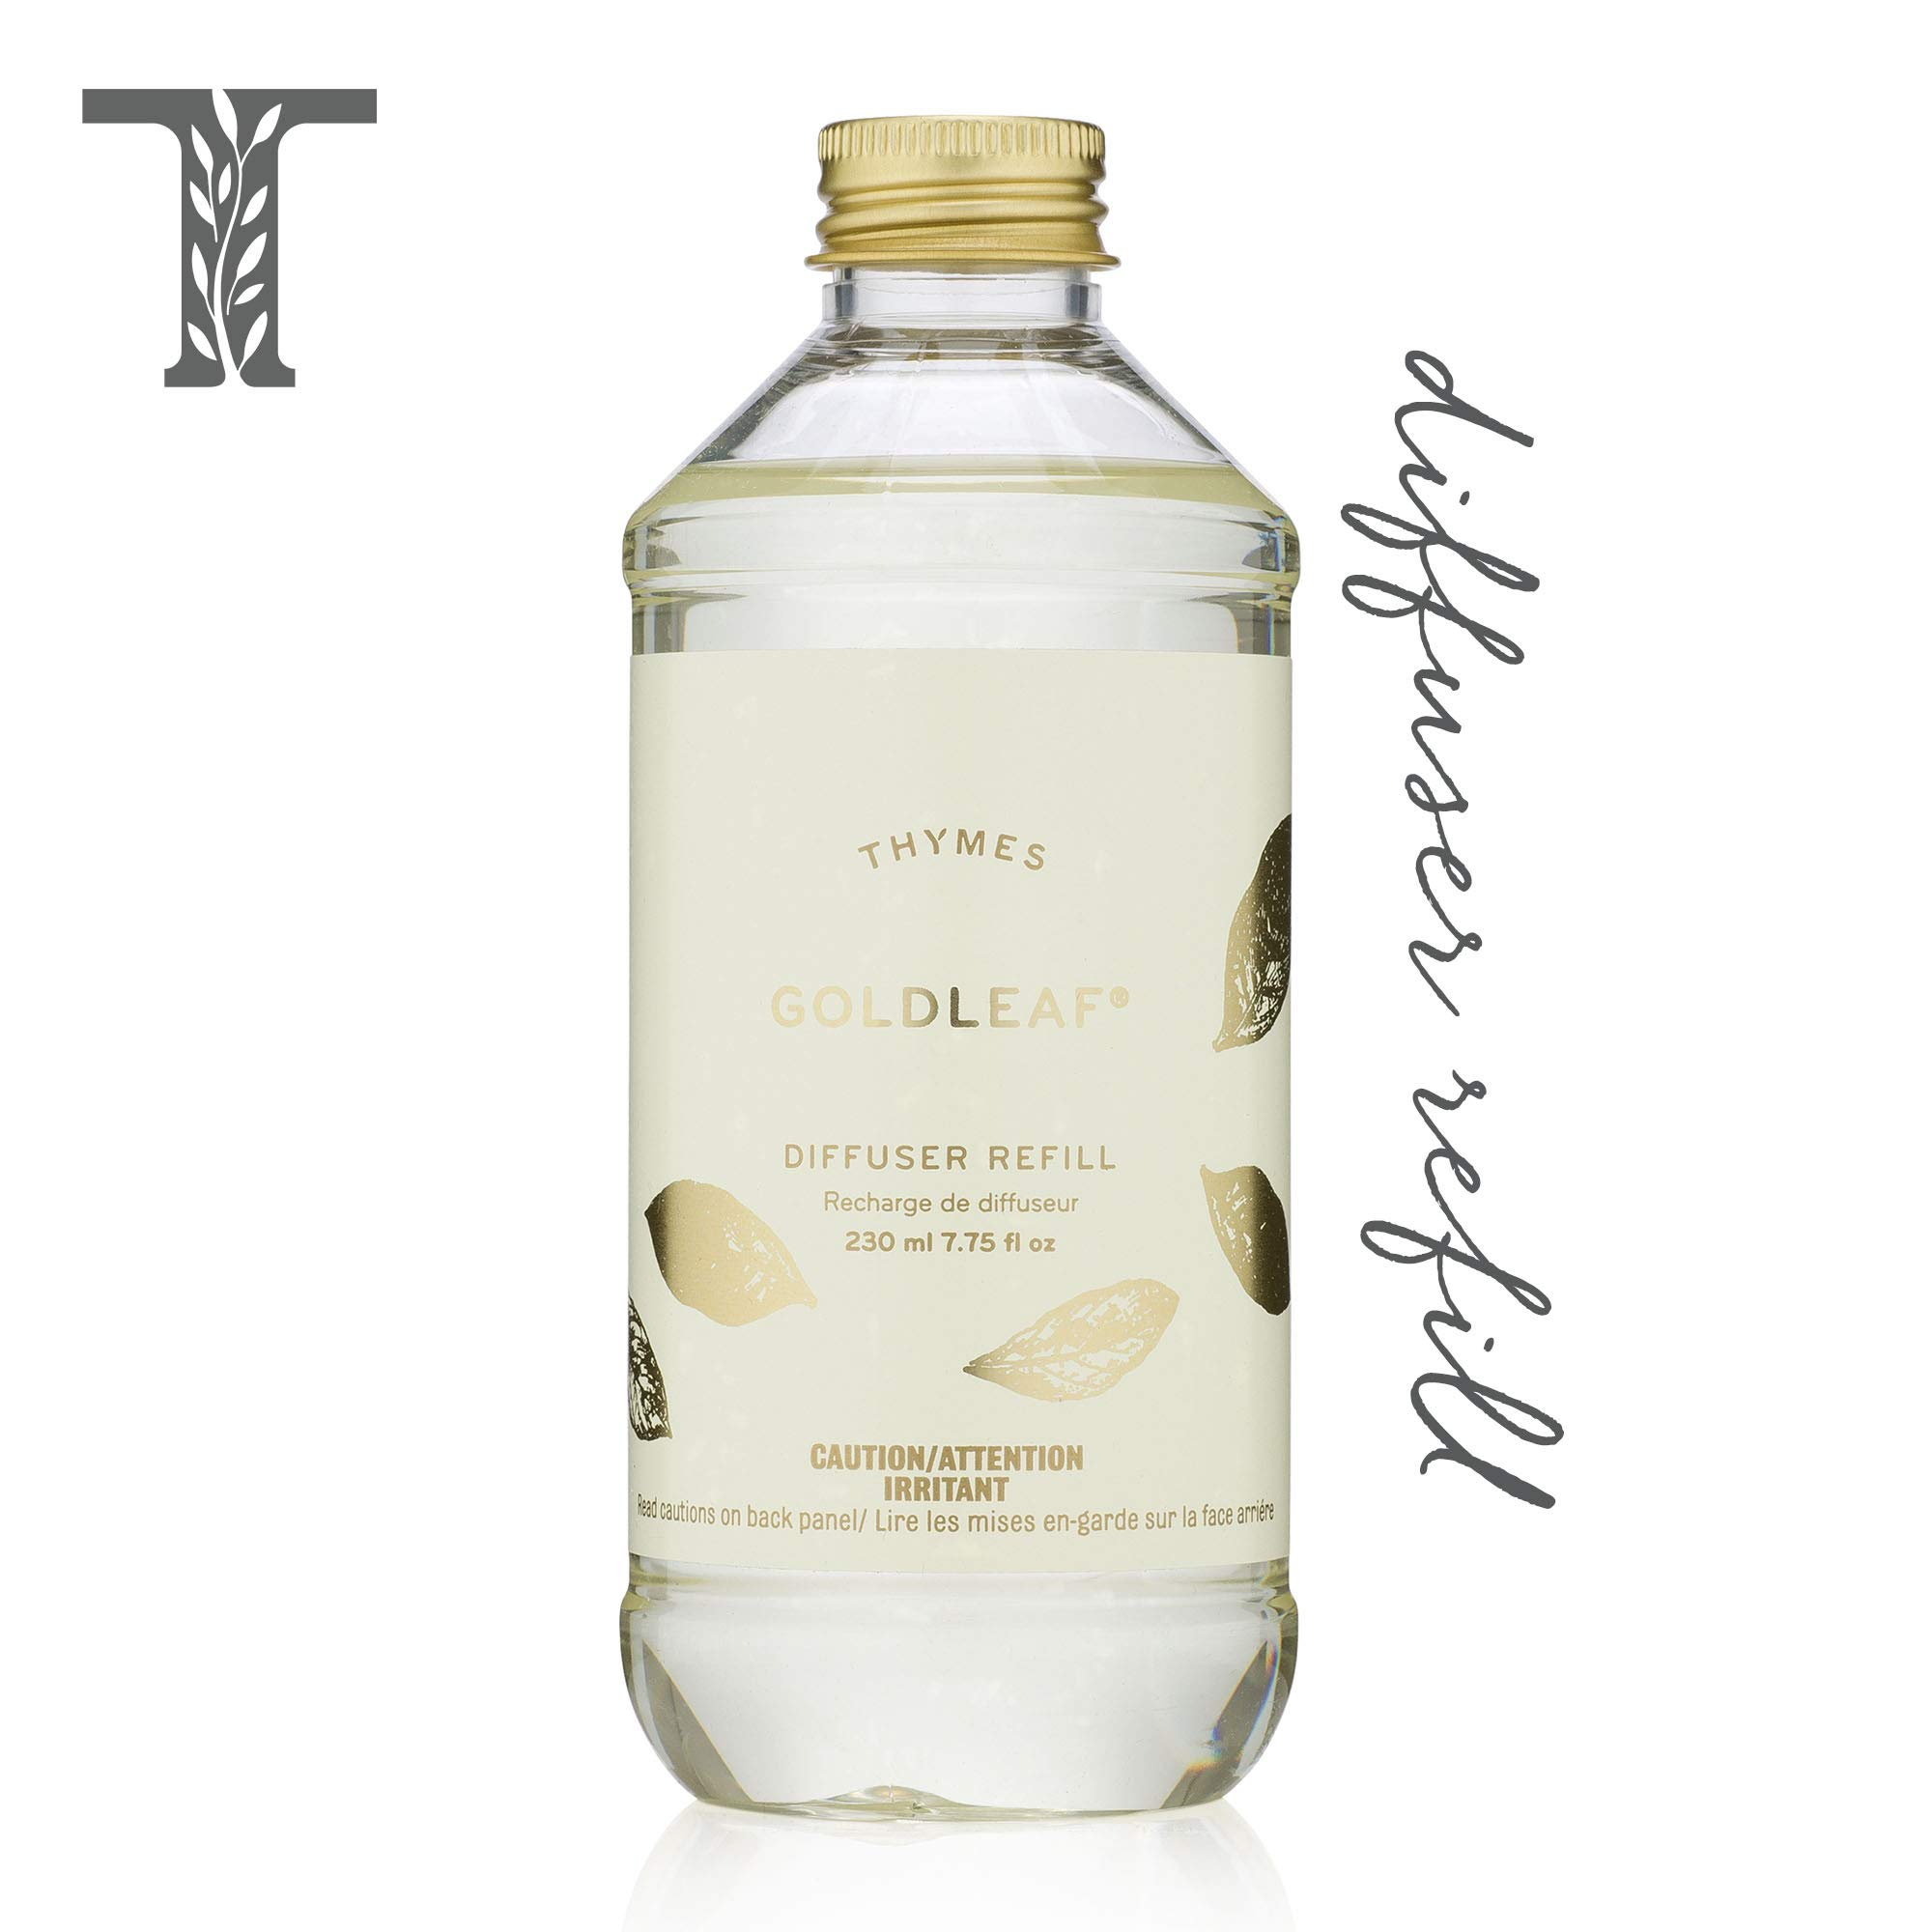 Thymes - Goldleaf Aromatic Diffuser Oil Refill - Large Bottle with Elegant Floral Scent - 7.75 oz by Thymes